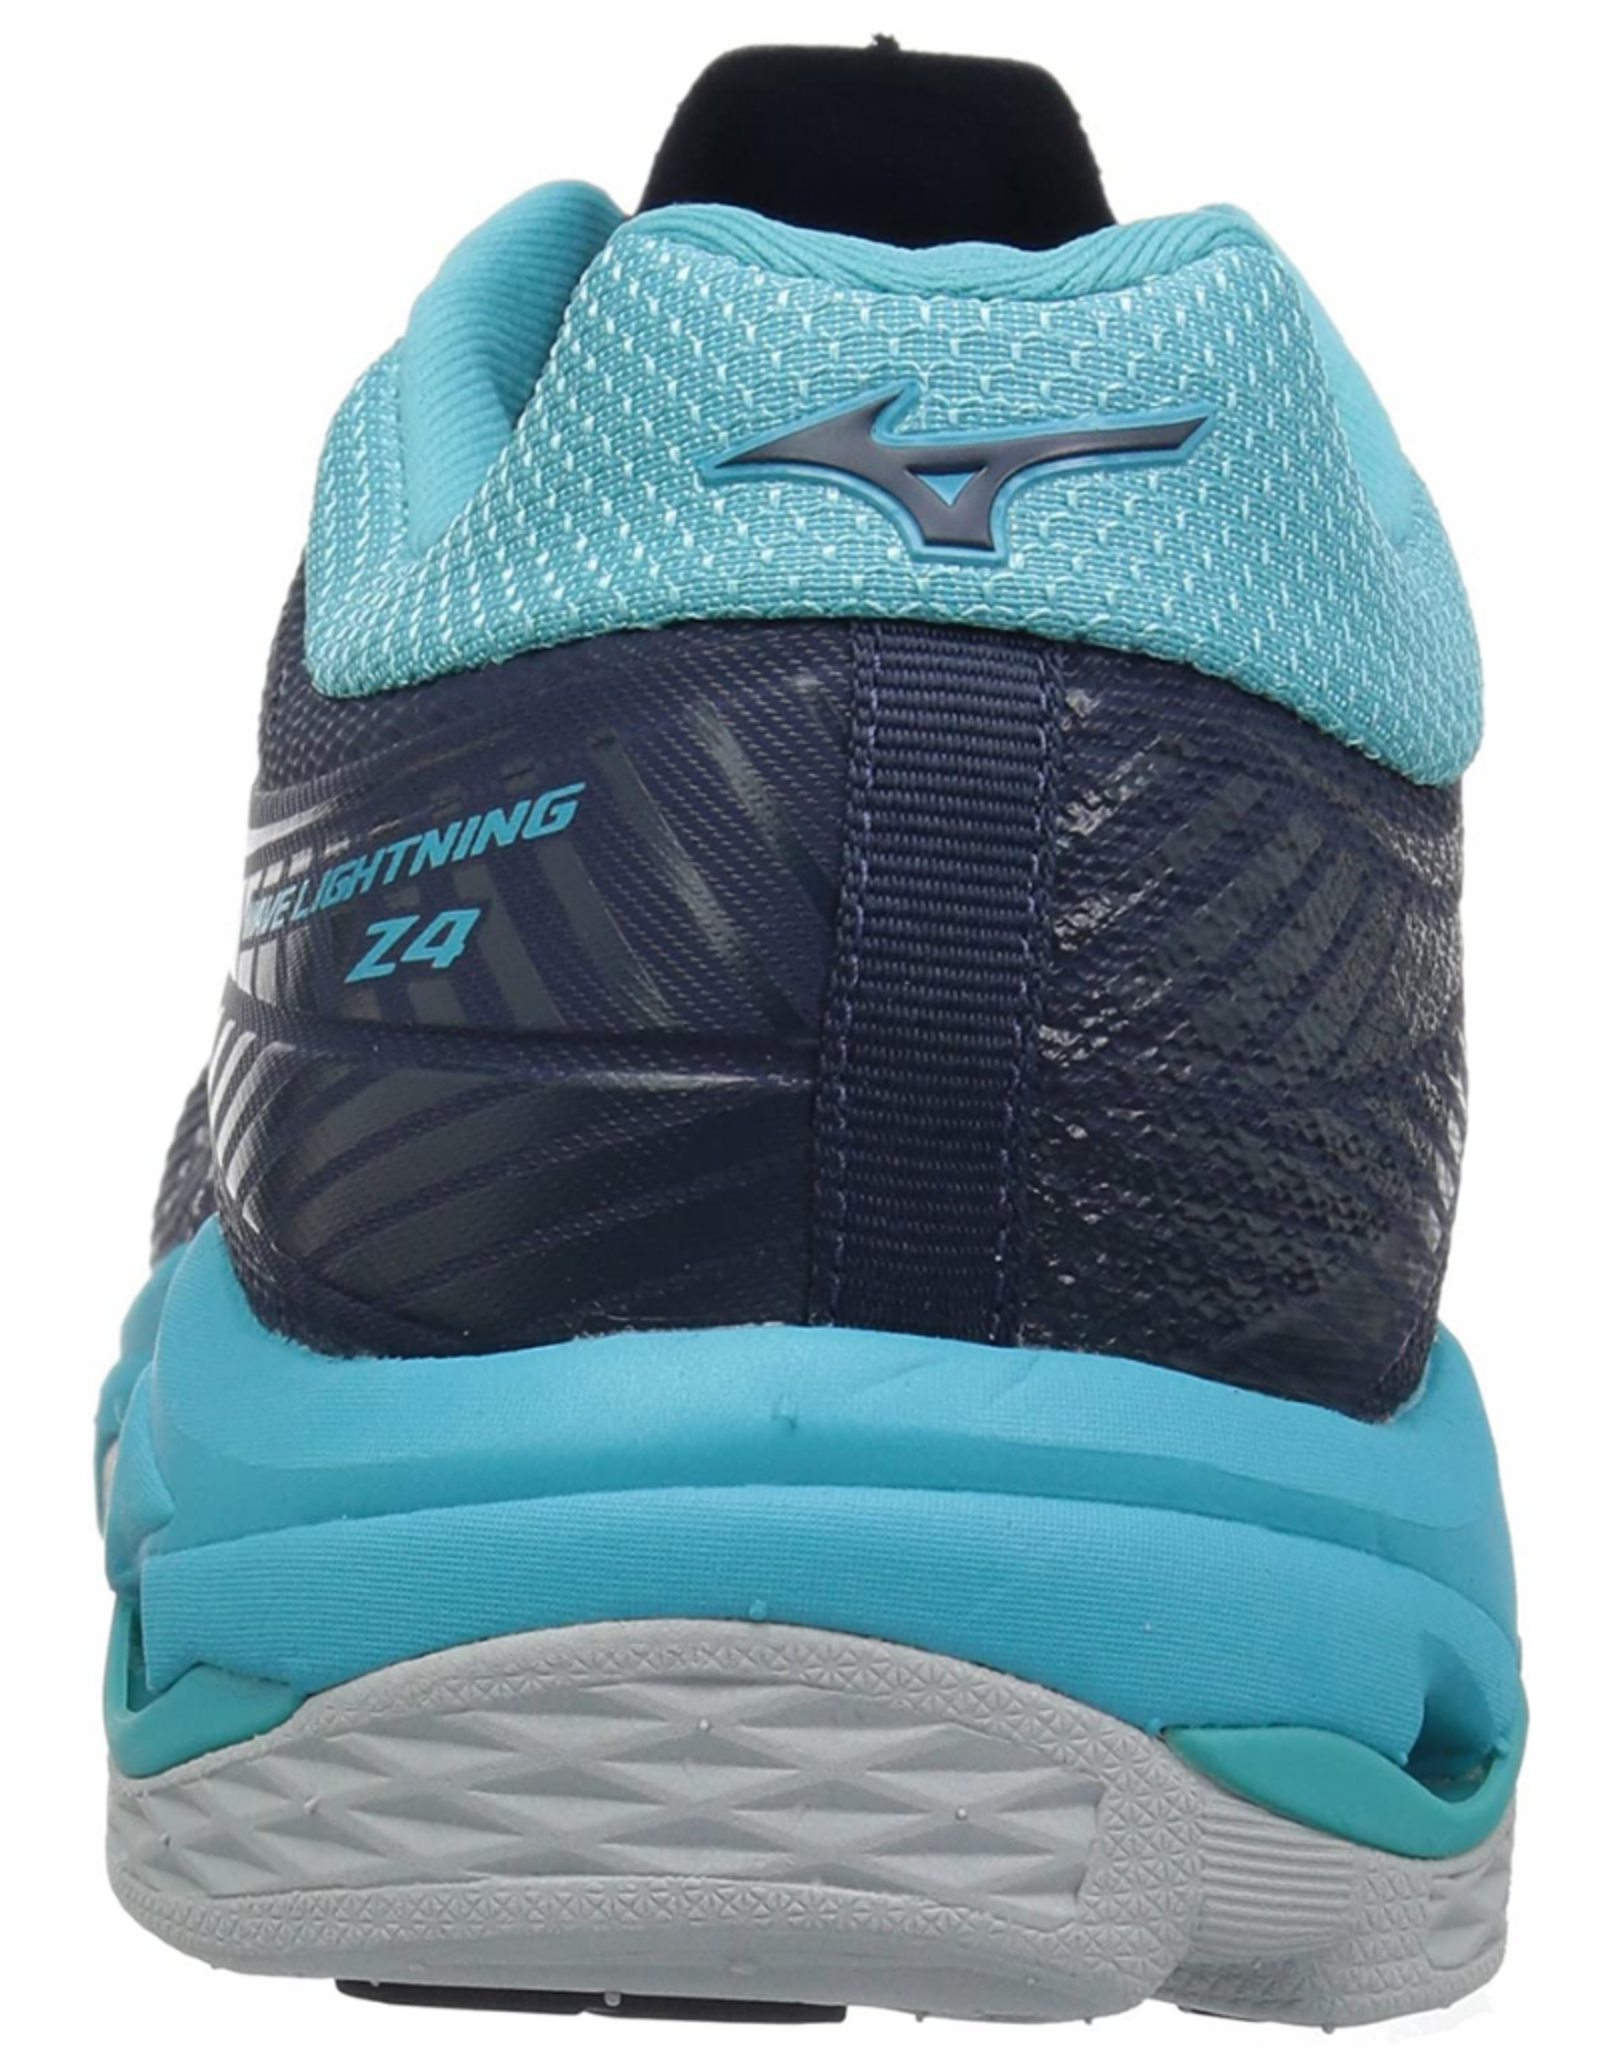 Mizuno Women's Wave Lightning Z4 Volleyball Shoes Navy/Teal